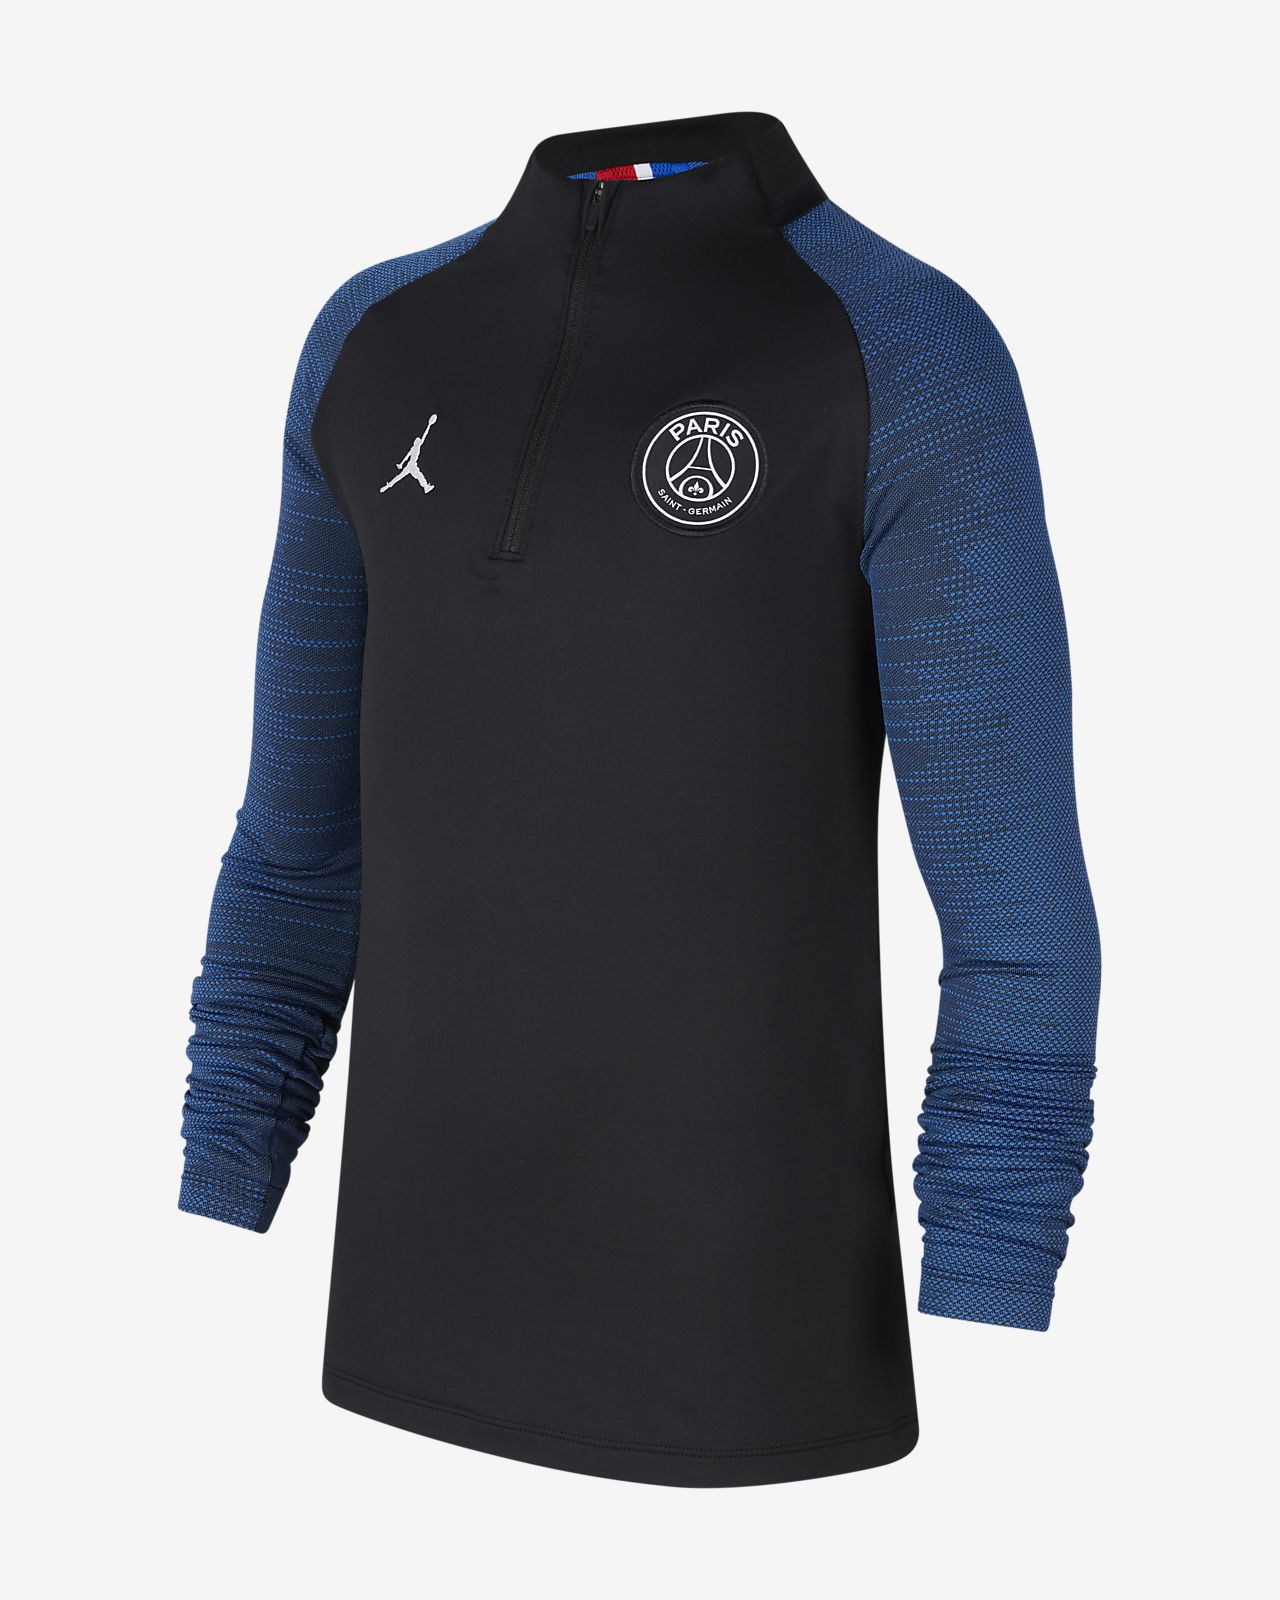 Haut d'entraînement de football Jordan x Paris Saint-Germain Dri-FIT Strike pour Enfant plus âgé